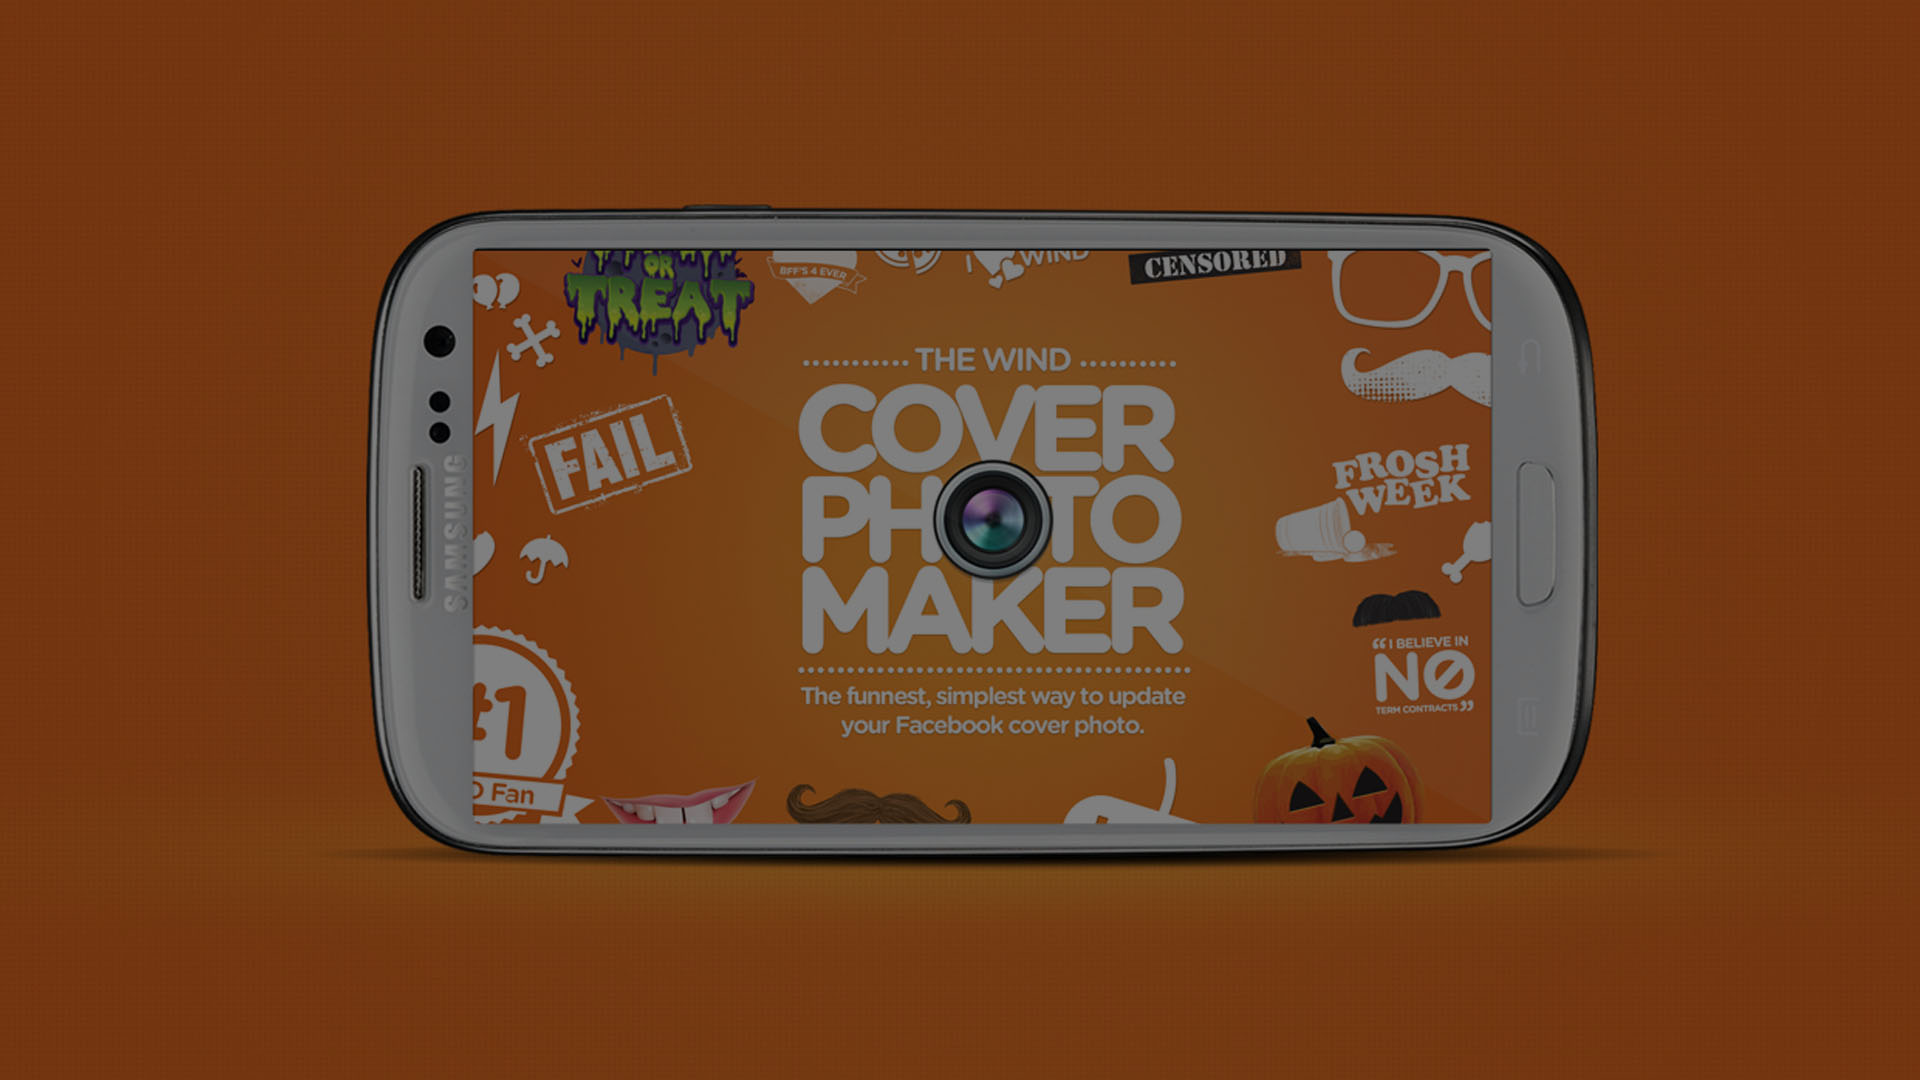 The Cover Photo Maker App